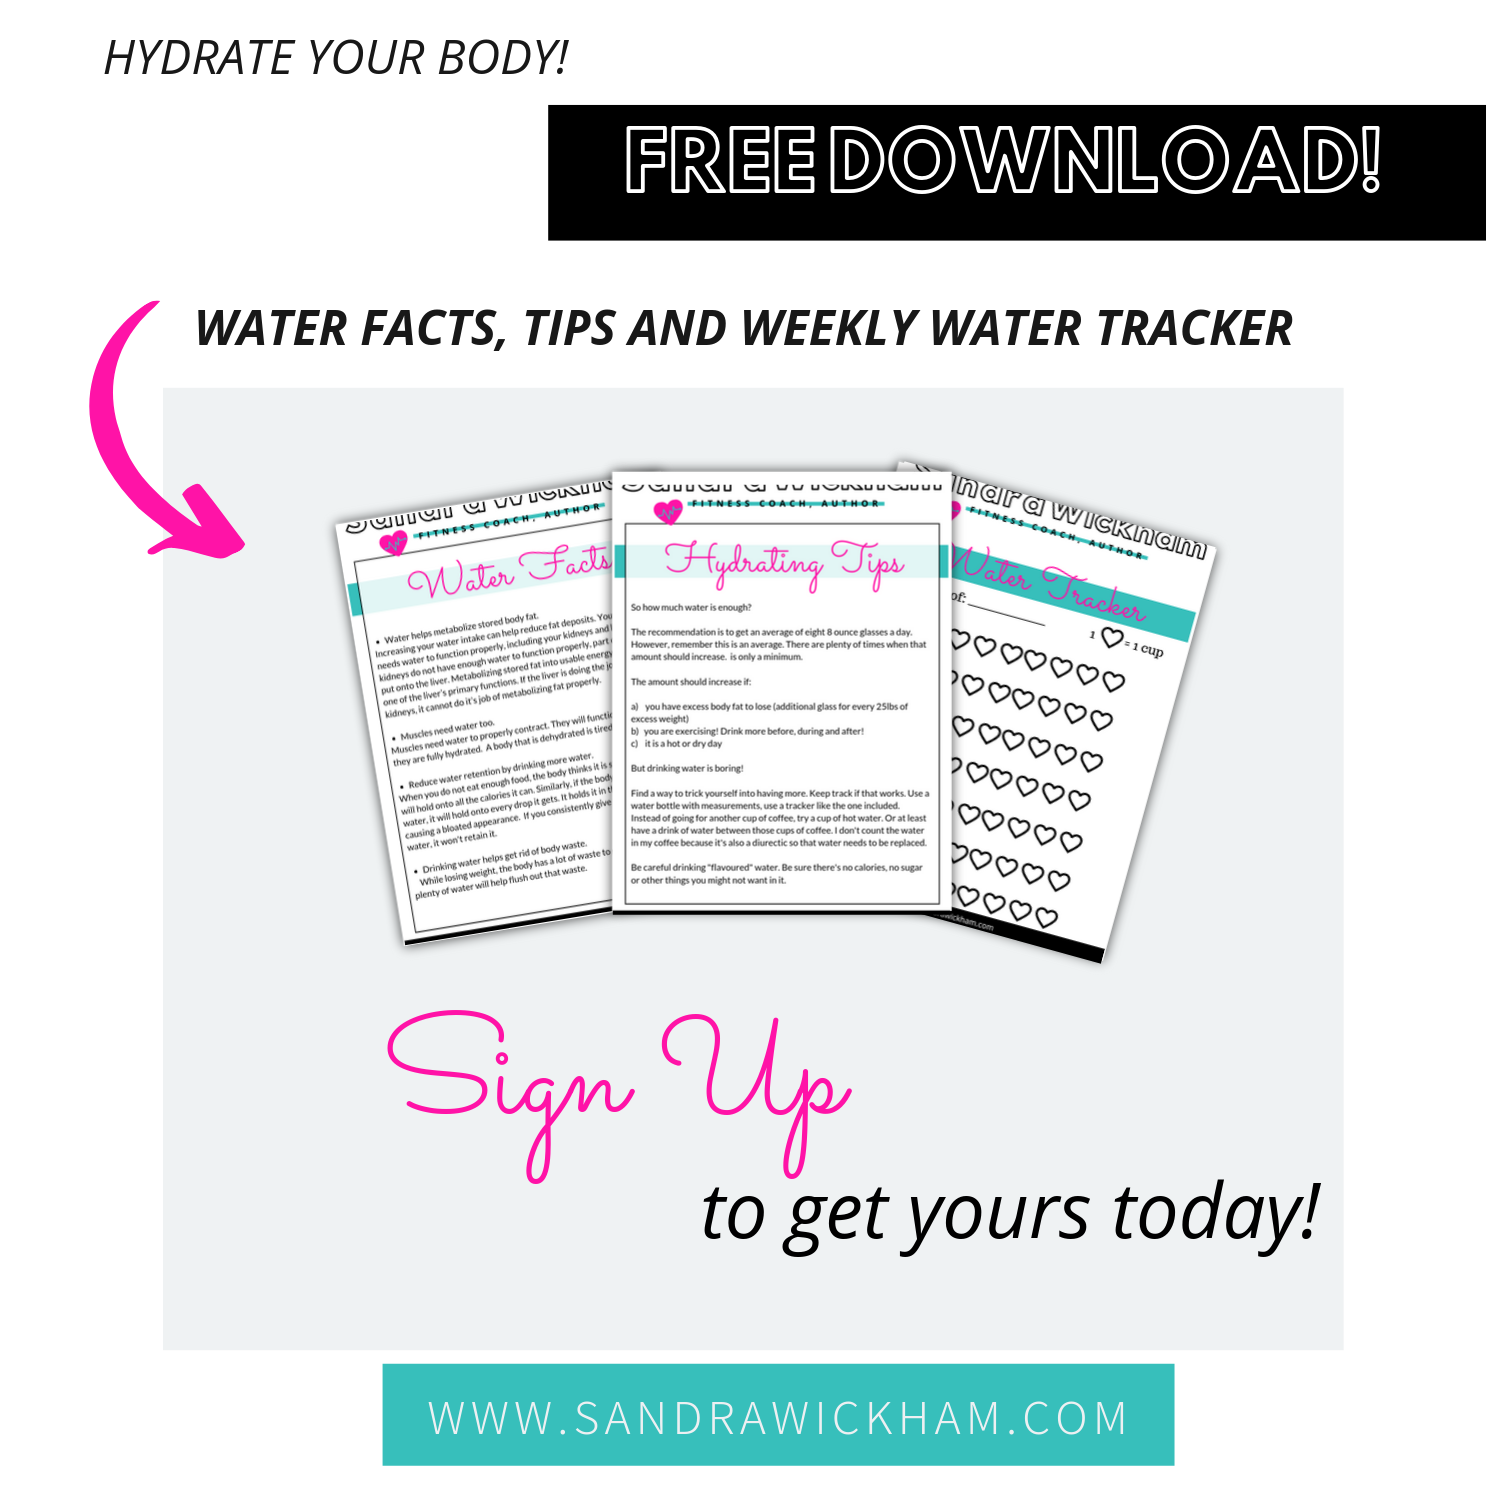 Free Hydration Bundle! - Get yours today! Simply sign up to my newsletter and you'll also get updates, notices of new free resources as well as health and tips.